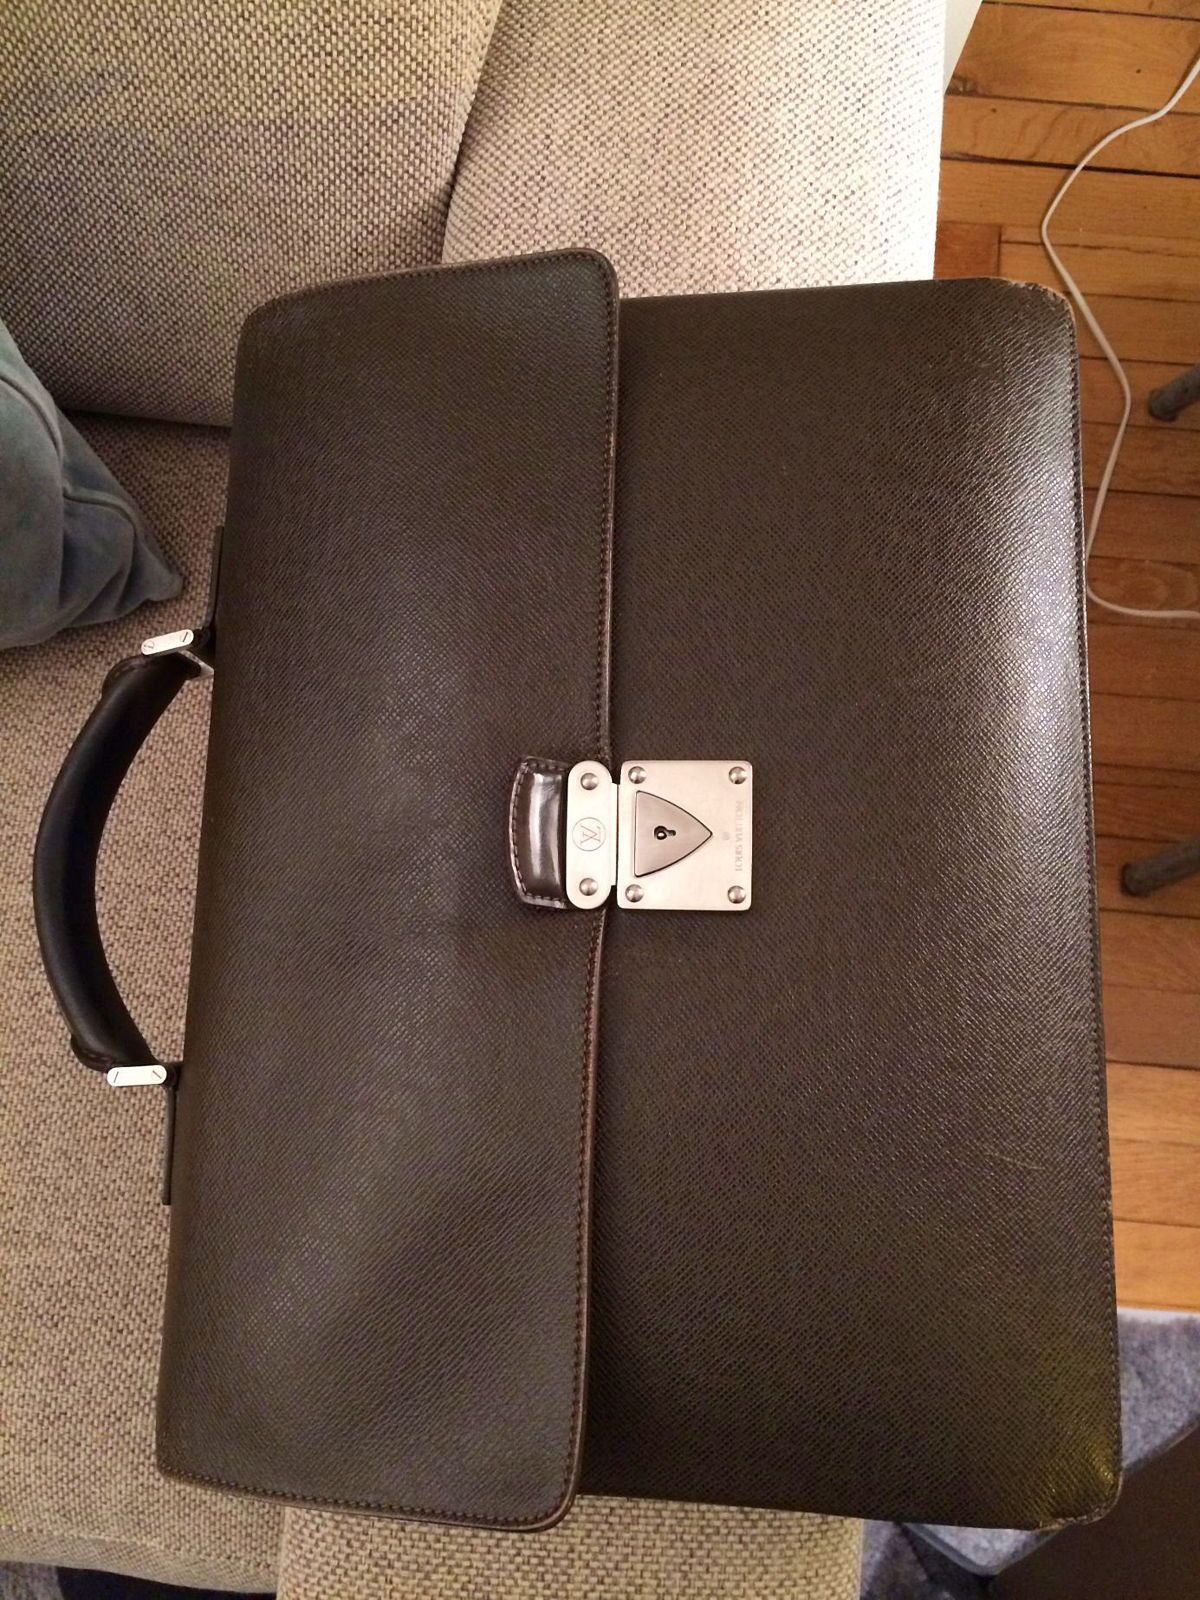 Cartable/porte document/sacoche cuir homme Louis Vuitton